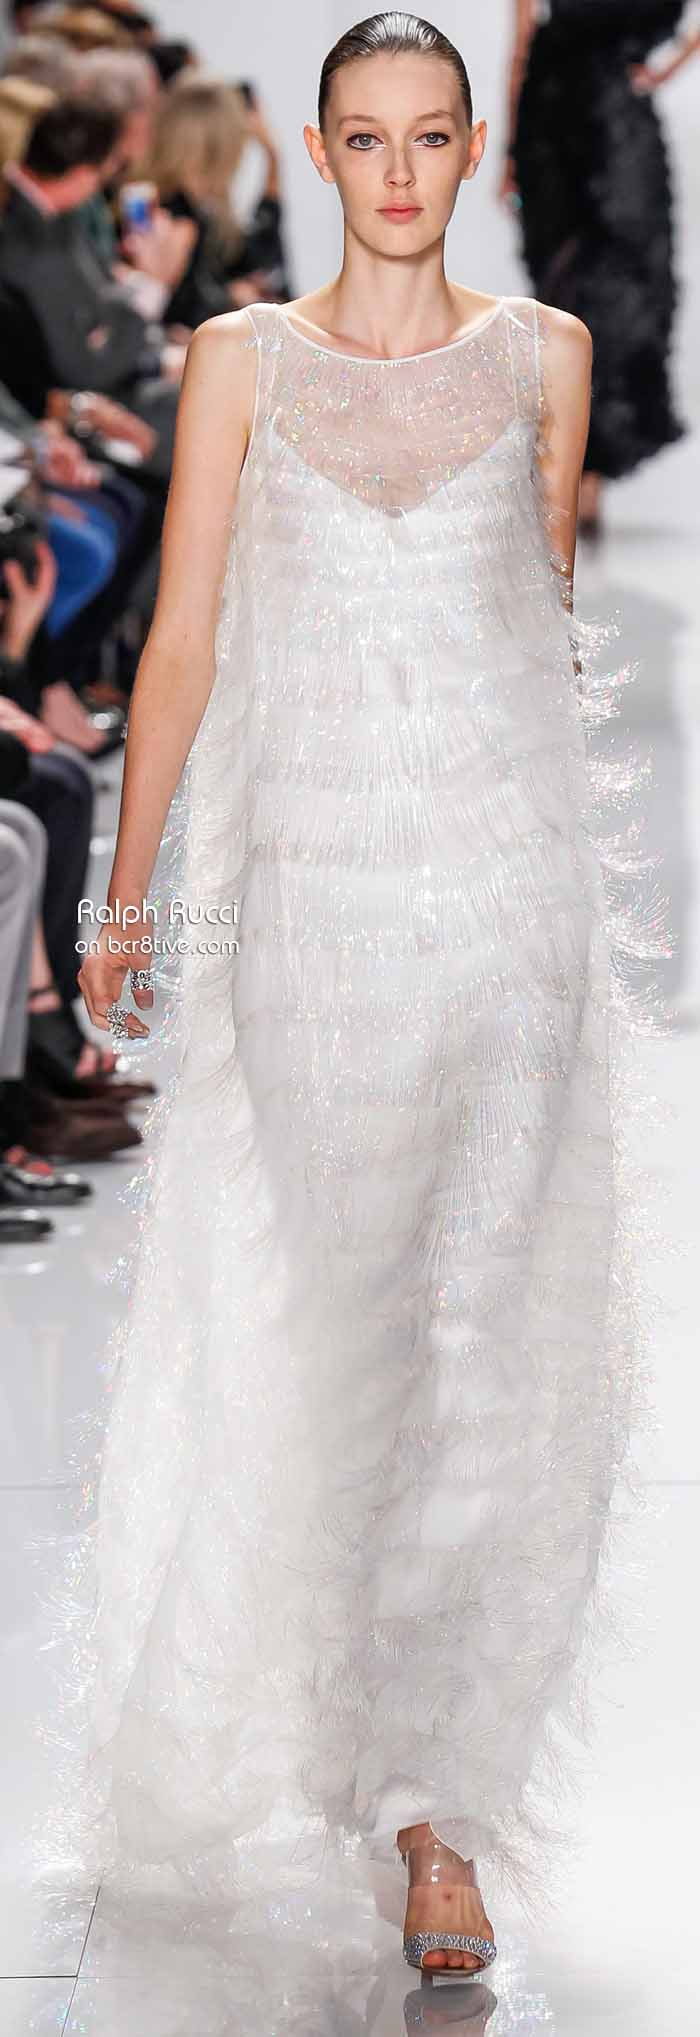 Ralph Rucci Spring 2014 #NYFW - Feathery Sparkle Texture